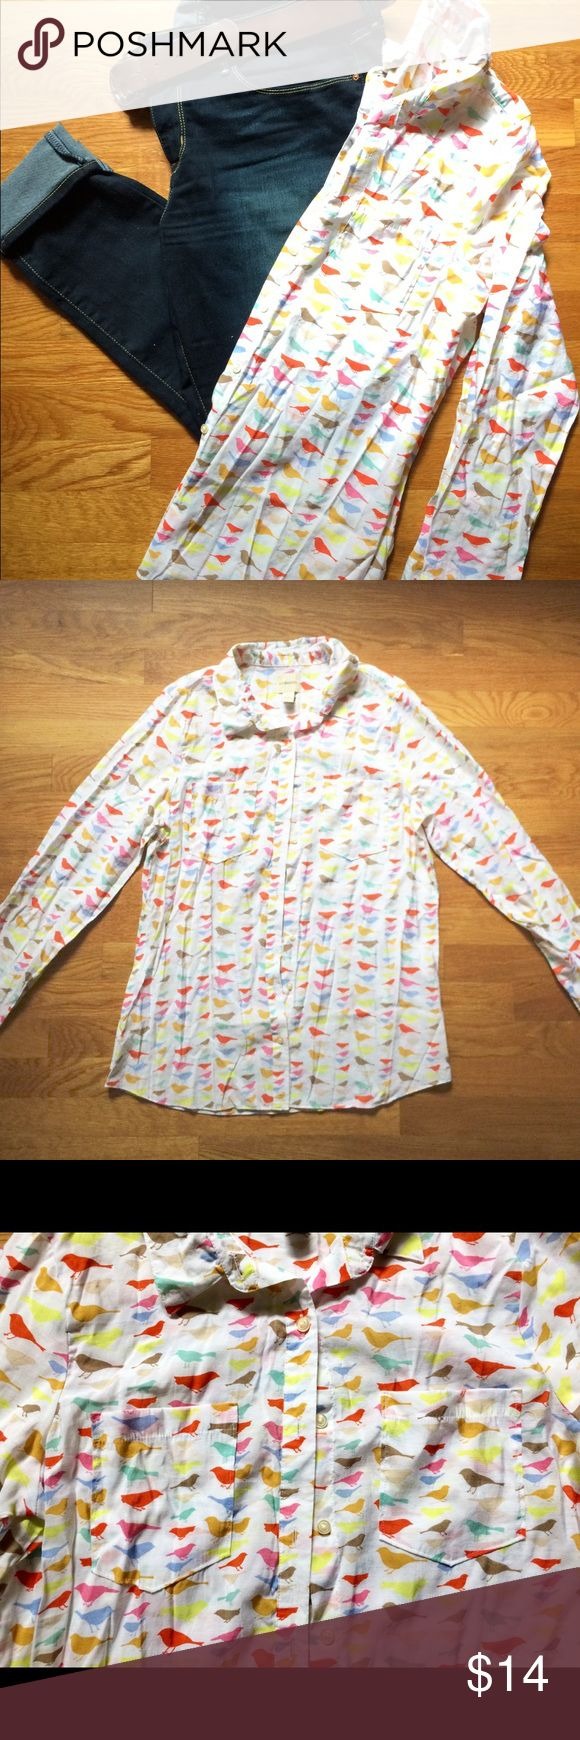 Women's Button Down Shirt. Women's Button Down Shirt. In a size Large. The Brand is G. H. Bass & Co. The material is 80% Ravon & 20% Nylon. Is in Excellent Condition and has a Lovely Multi Colored Bird Pattern. No stains or Flaws. I would keep it for my self but is to small for my current size. Price is negotiable so make me an offer!👍🏻 Thank You!☺️ ❌No Trades, Pants Not Included!❌ G. H. Bass & Co. Tops Button Down Shirts